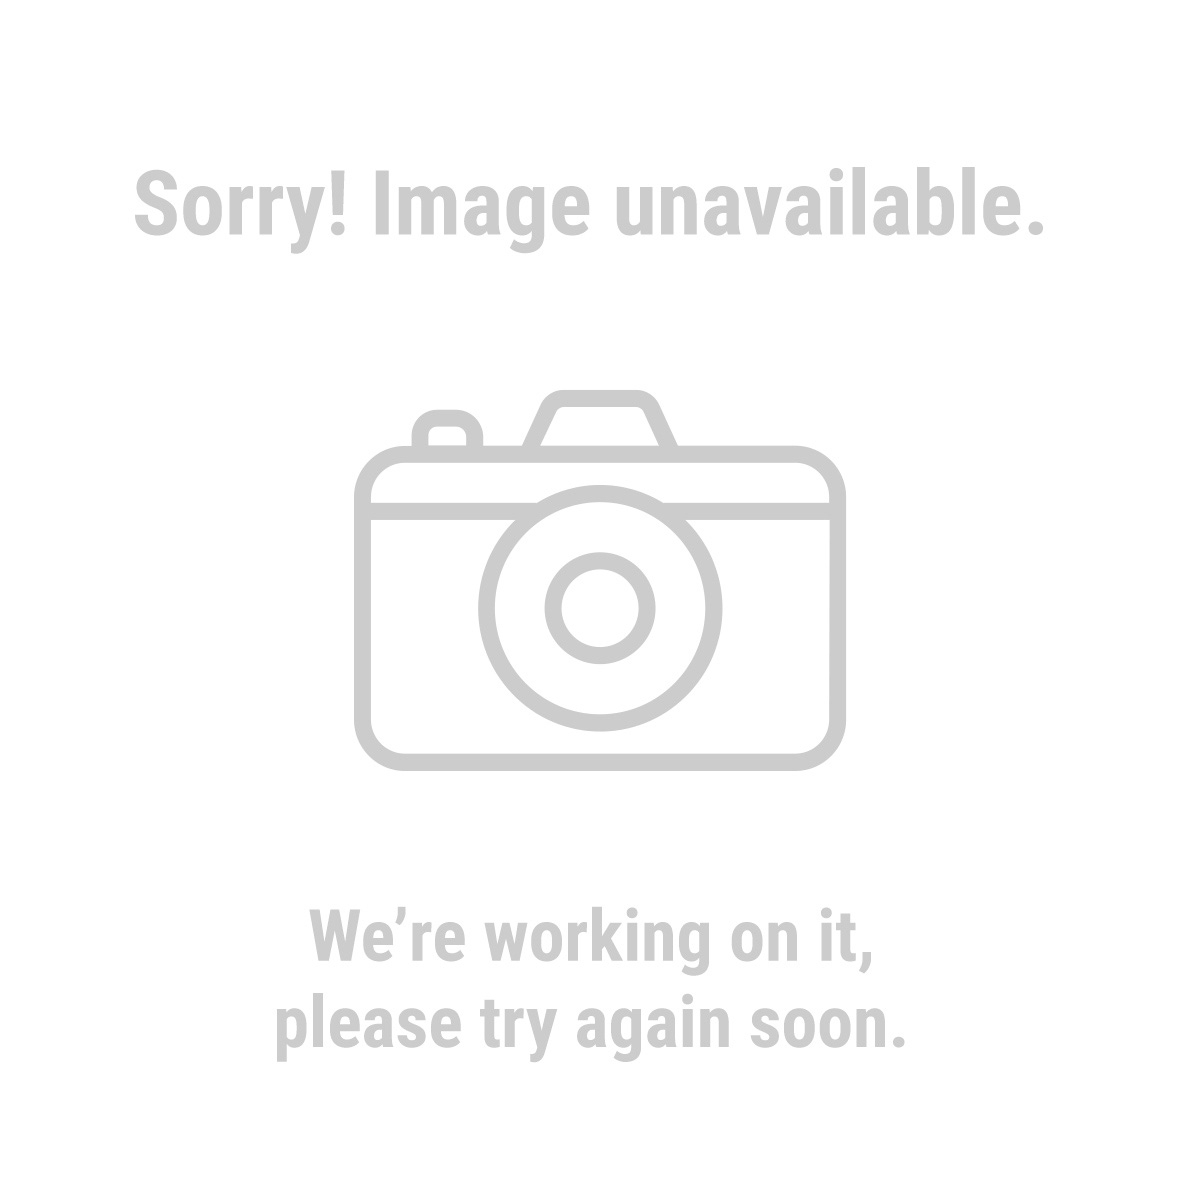 Warrior® 62187 150 Grit Sanding Sleeves 6 Pc